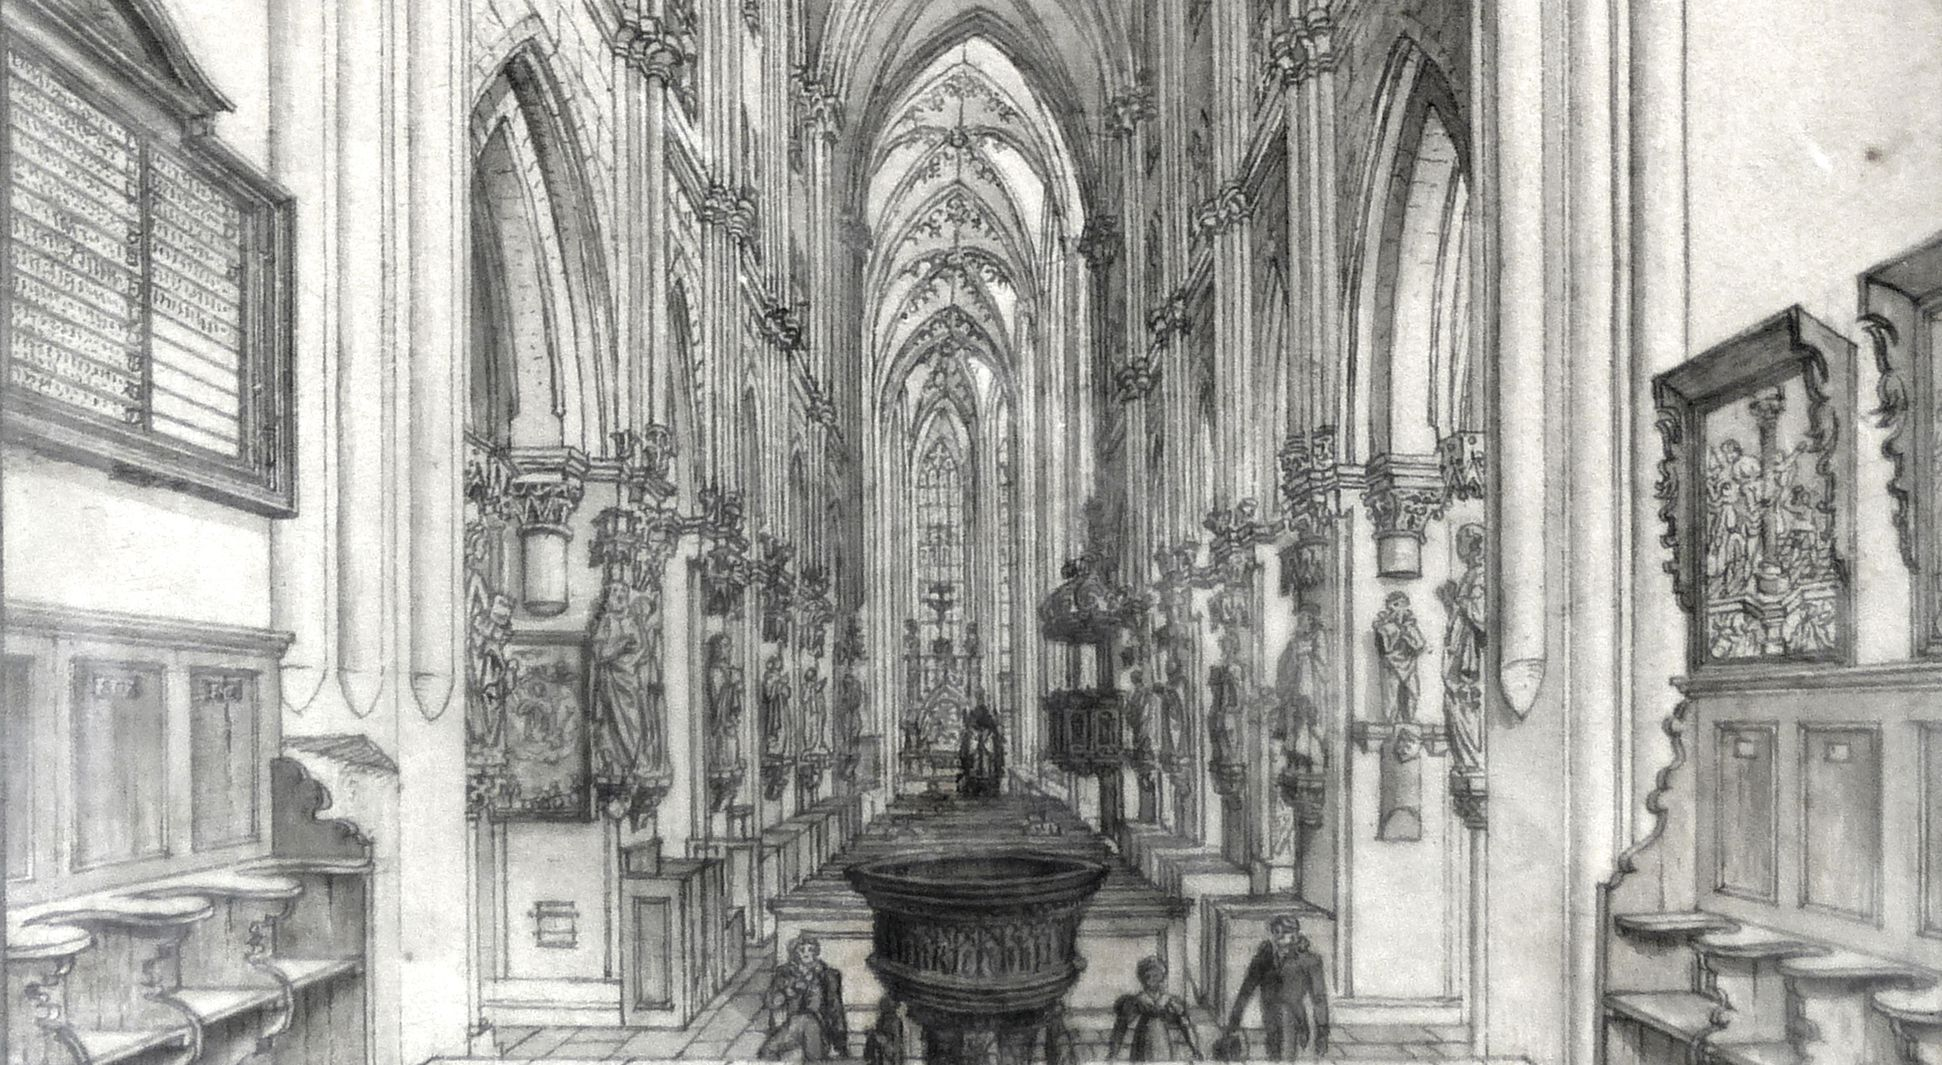 Interior of St. Sebaldus Church in Nuremberg lower section of the picture